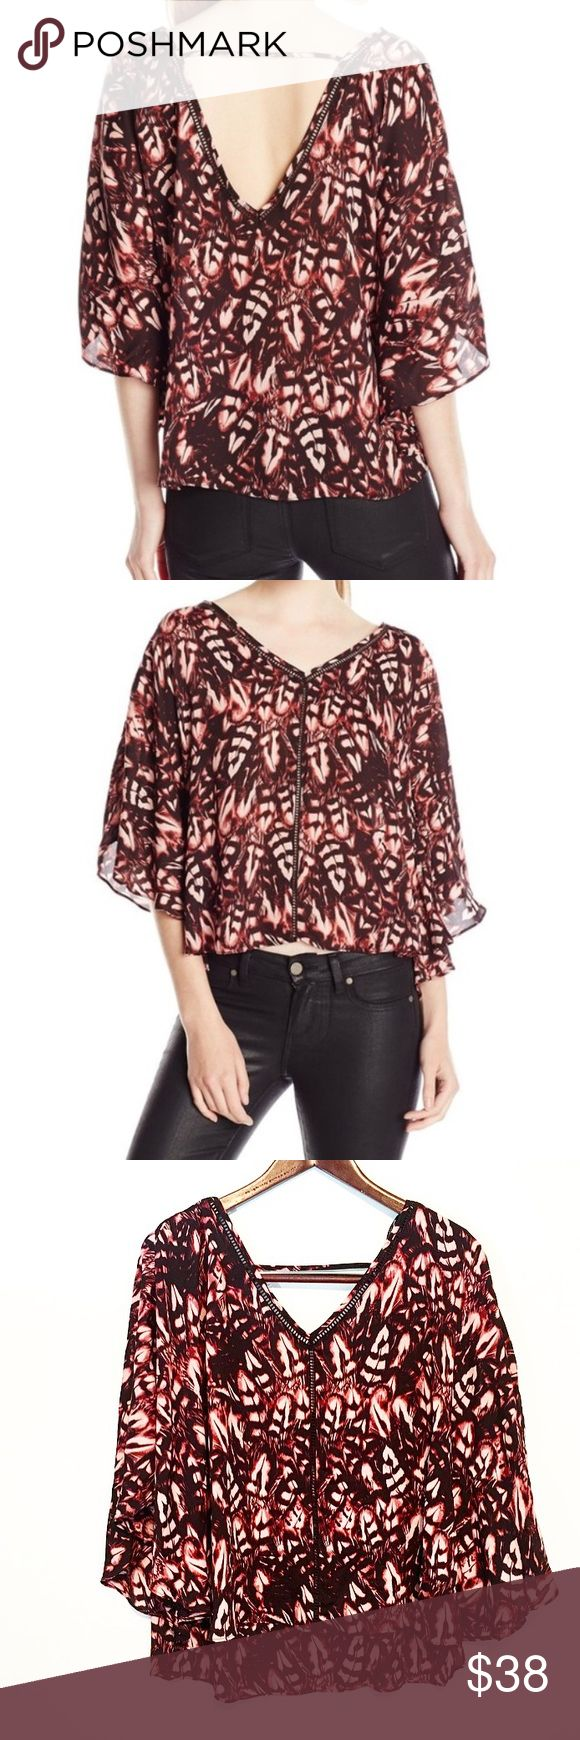 Jessica Simpson Reece Feather Print Batwing Top Such an interesting, unique piece! A feather, floral, almost animal like print. Pink and black coloring, probably closest to the stock photos. Batwing style sleeves and a cut out back. New! Jessica Simpson Tops Blouses